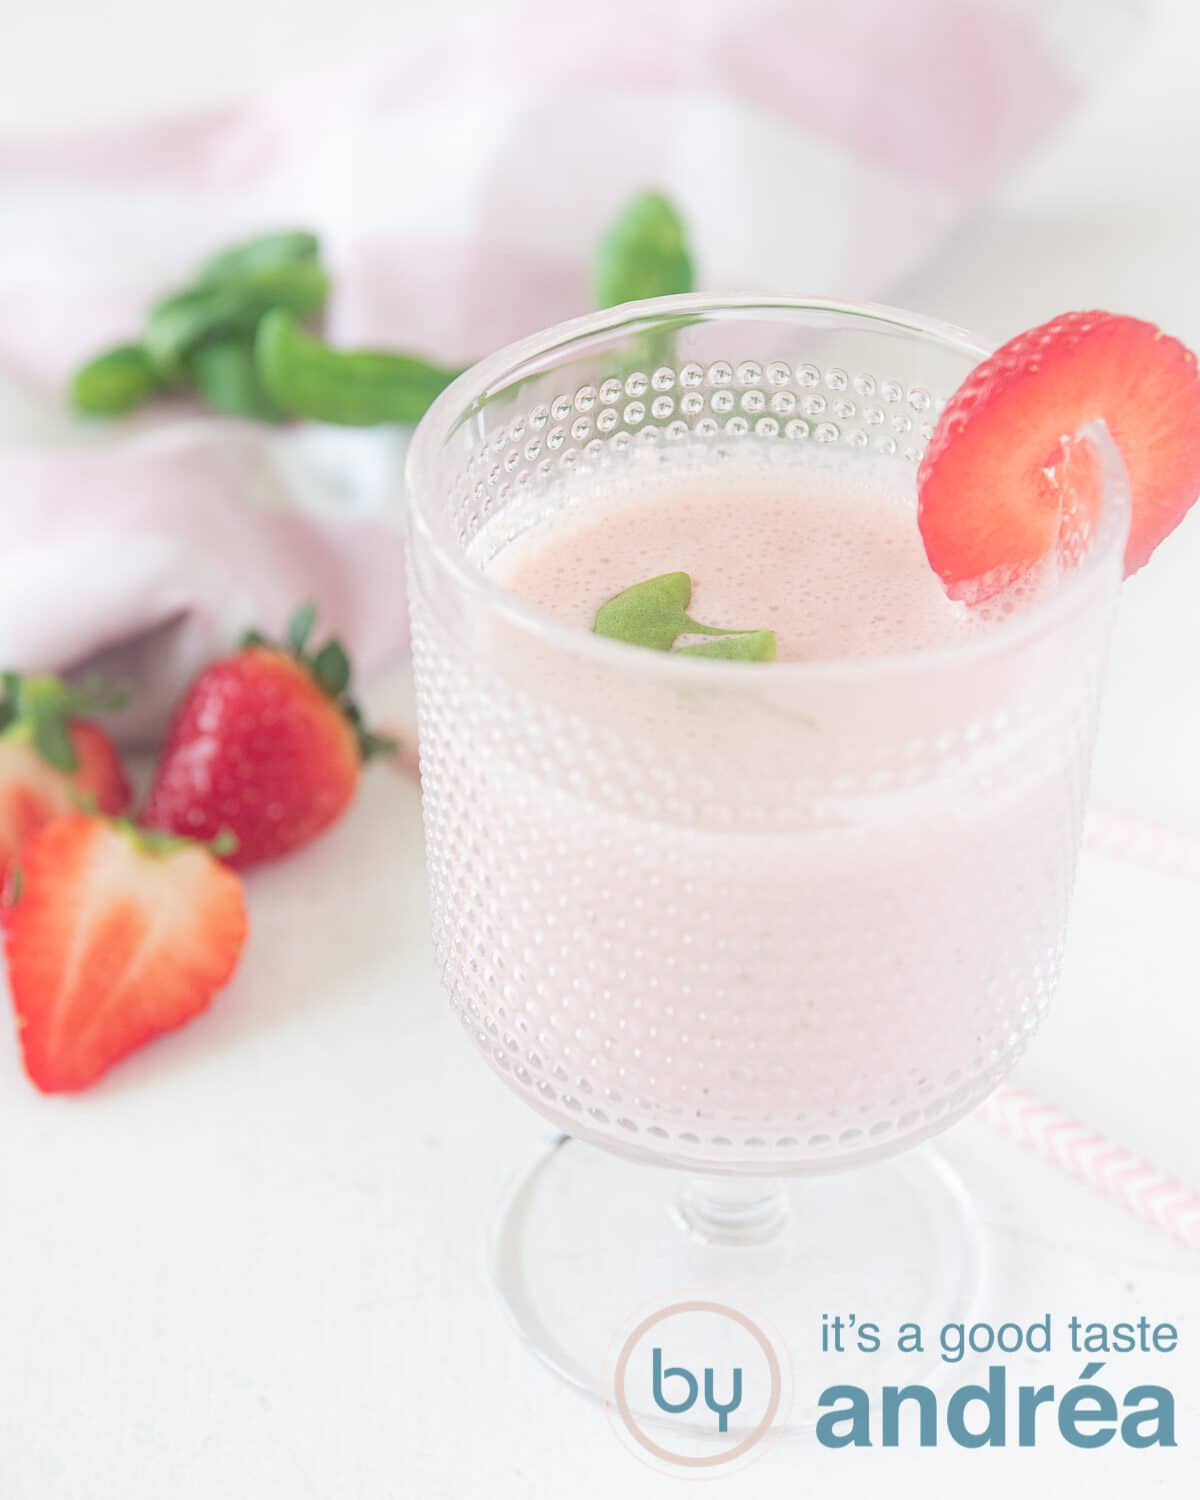 A glass with strawberry yogurt smoothie. Some strawberries and. basil in the background